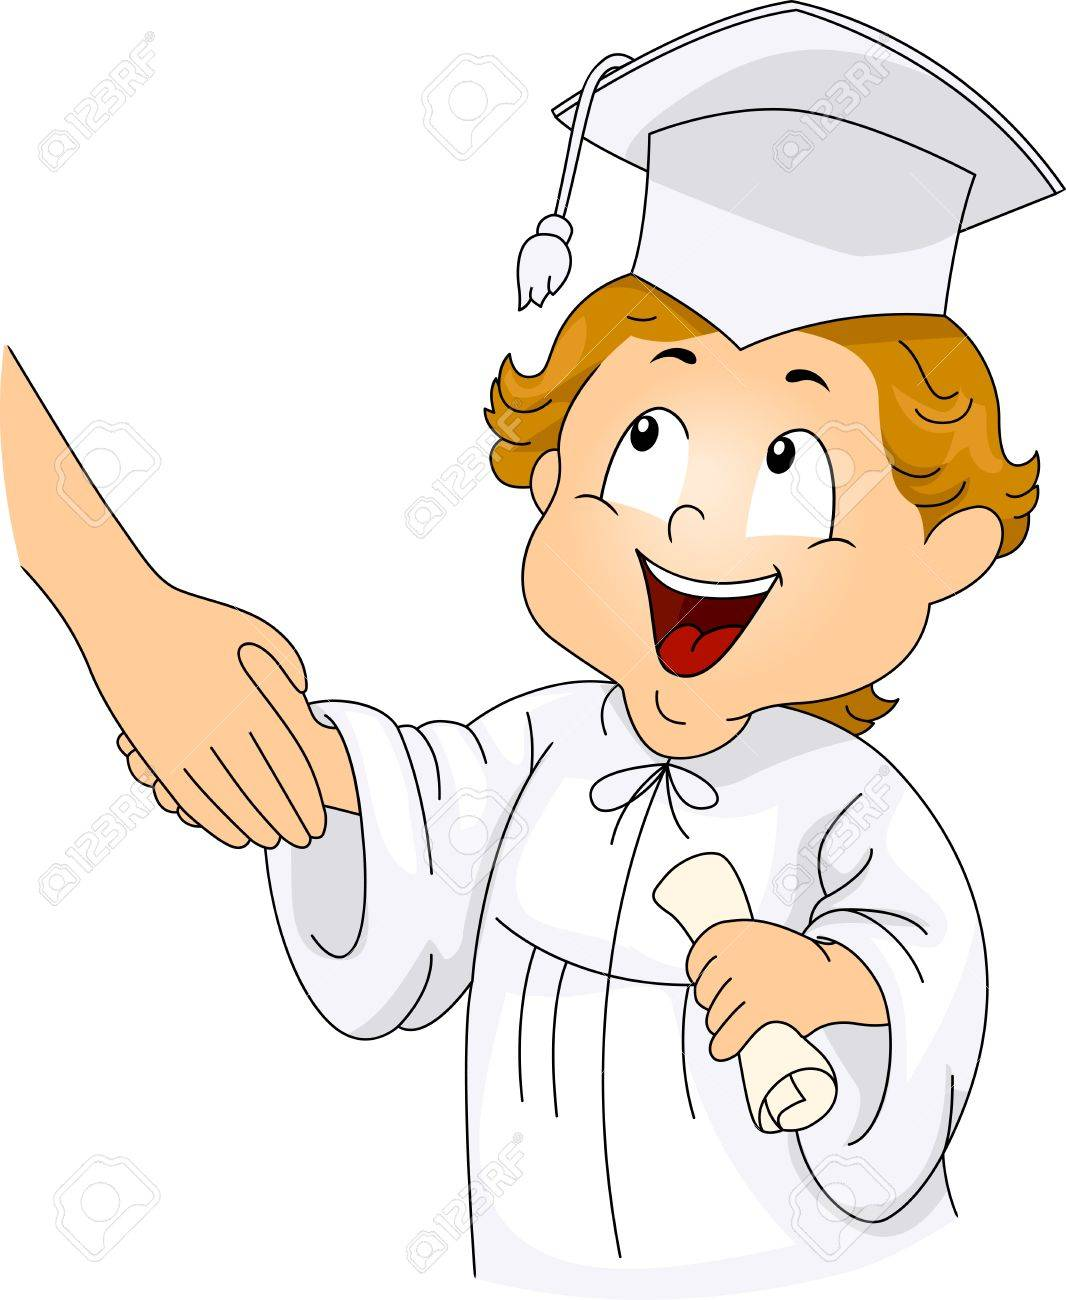 Illustration of a Little Graduate Shaking Hands with his Teacher Stock Illustration - 9256821